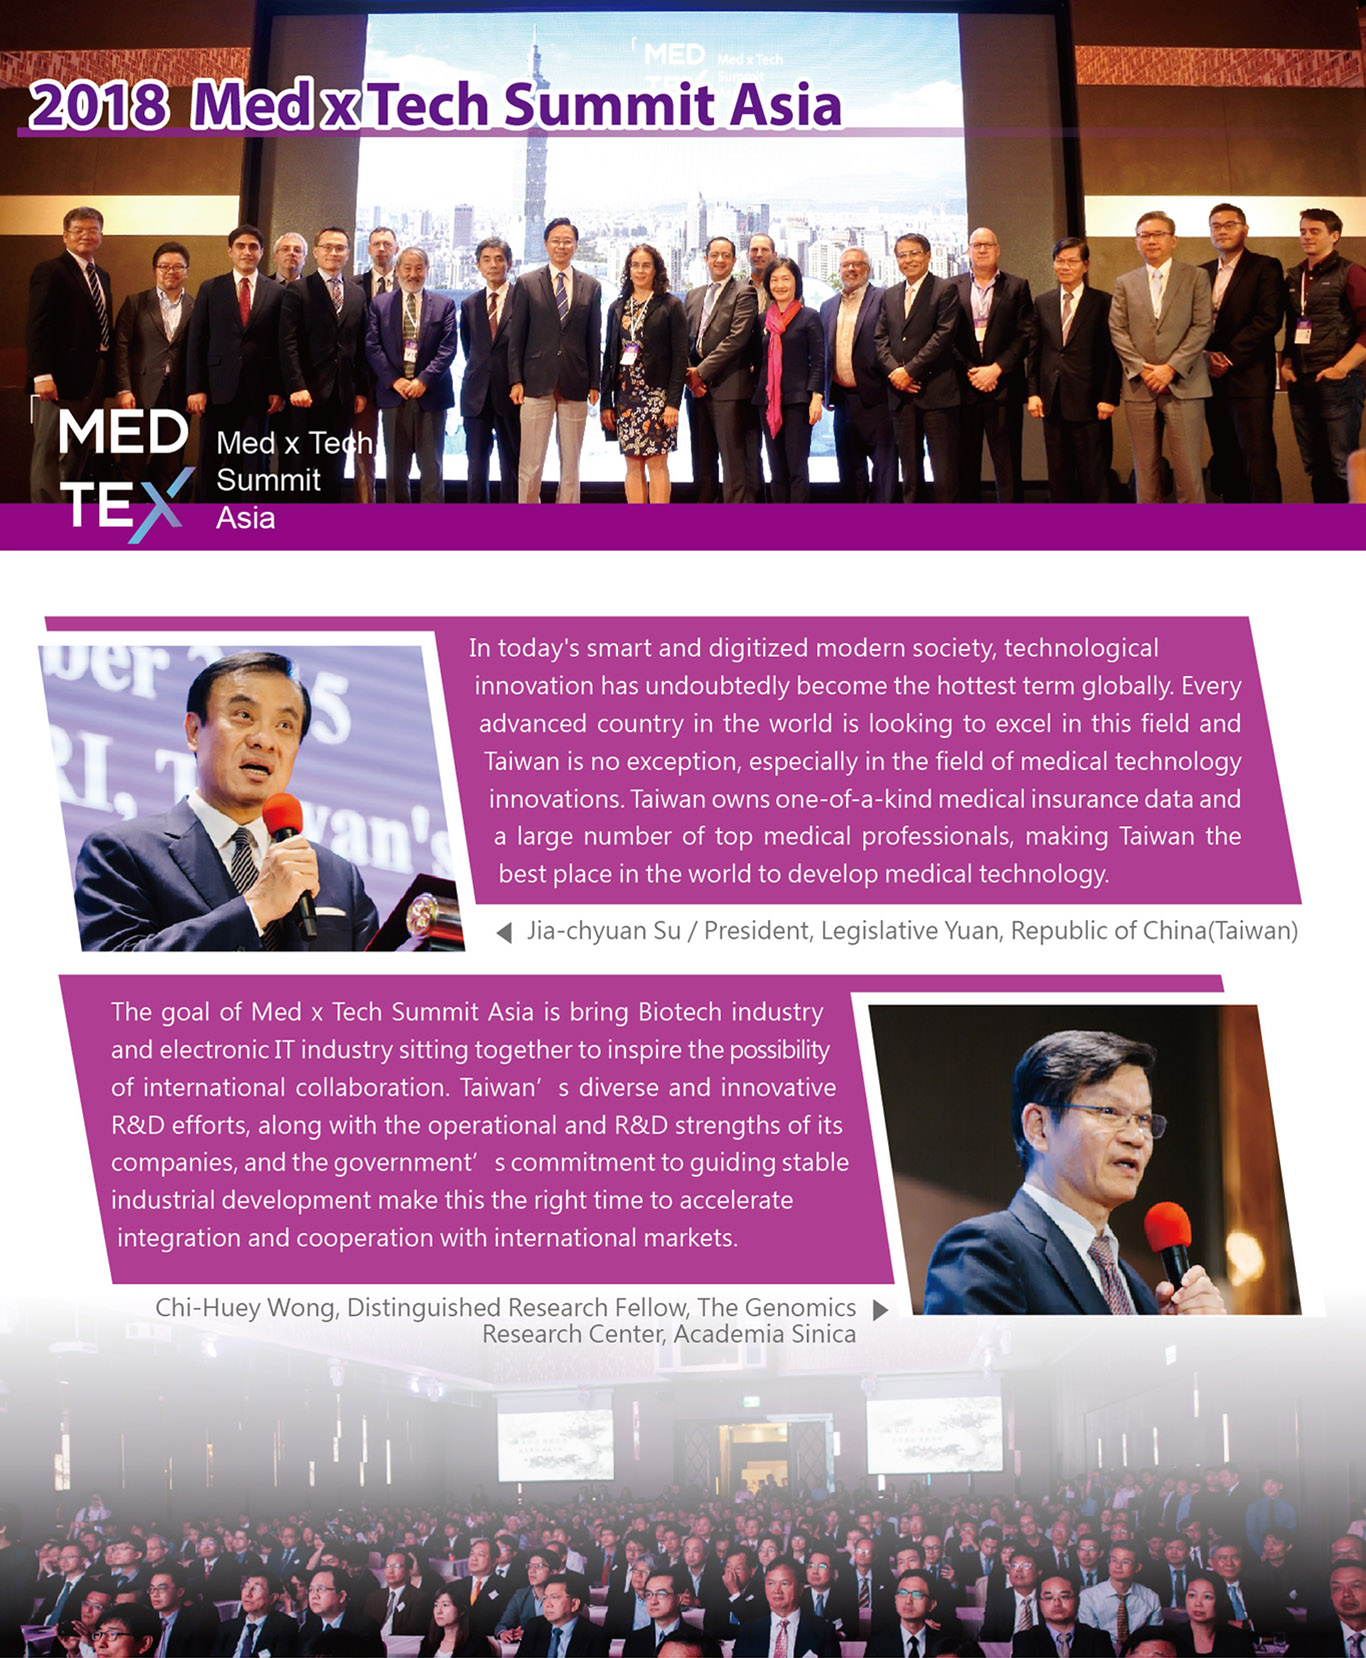 2018 Med x Tech Summit Asia,Su, Jia-chyuan, President, Legislative Yuan, Republic of China(Taiwan)In today's smart and digitized modern society, technological innovation has undoubtedly become the hottest term globally. Every advanced country in the world is looking to excel in this field and Taiwan is no exception, especially in the field of medical technology innovations. Taiwan owns one-of-a-kind medical insurance data and a large number of top medical professionals, making Taiwan the best place in the world to develop medical technology.Chi-Huey Wong, Distinguished Research Fellow, The Genomics Research Center, Academia Sinica.The goal of Med x Tech Summit Asia is bring Biotech industry and electronic IT industry sitting together to inspire the possibility of international collaboration. Taiwan's diverse and innovative R&D efforts, along with the operational and R&D strengths of its companies, and the government's commitment to guiding stable industrial development make this the right time to accelerate integration and cooperation with international markets.